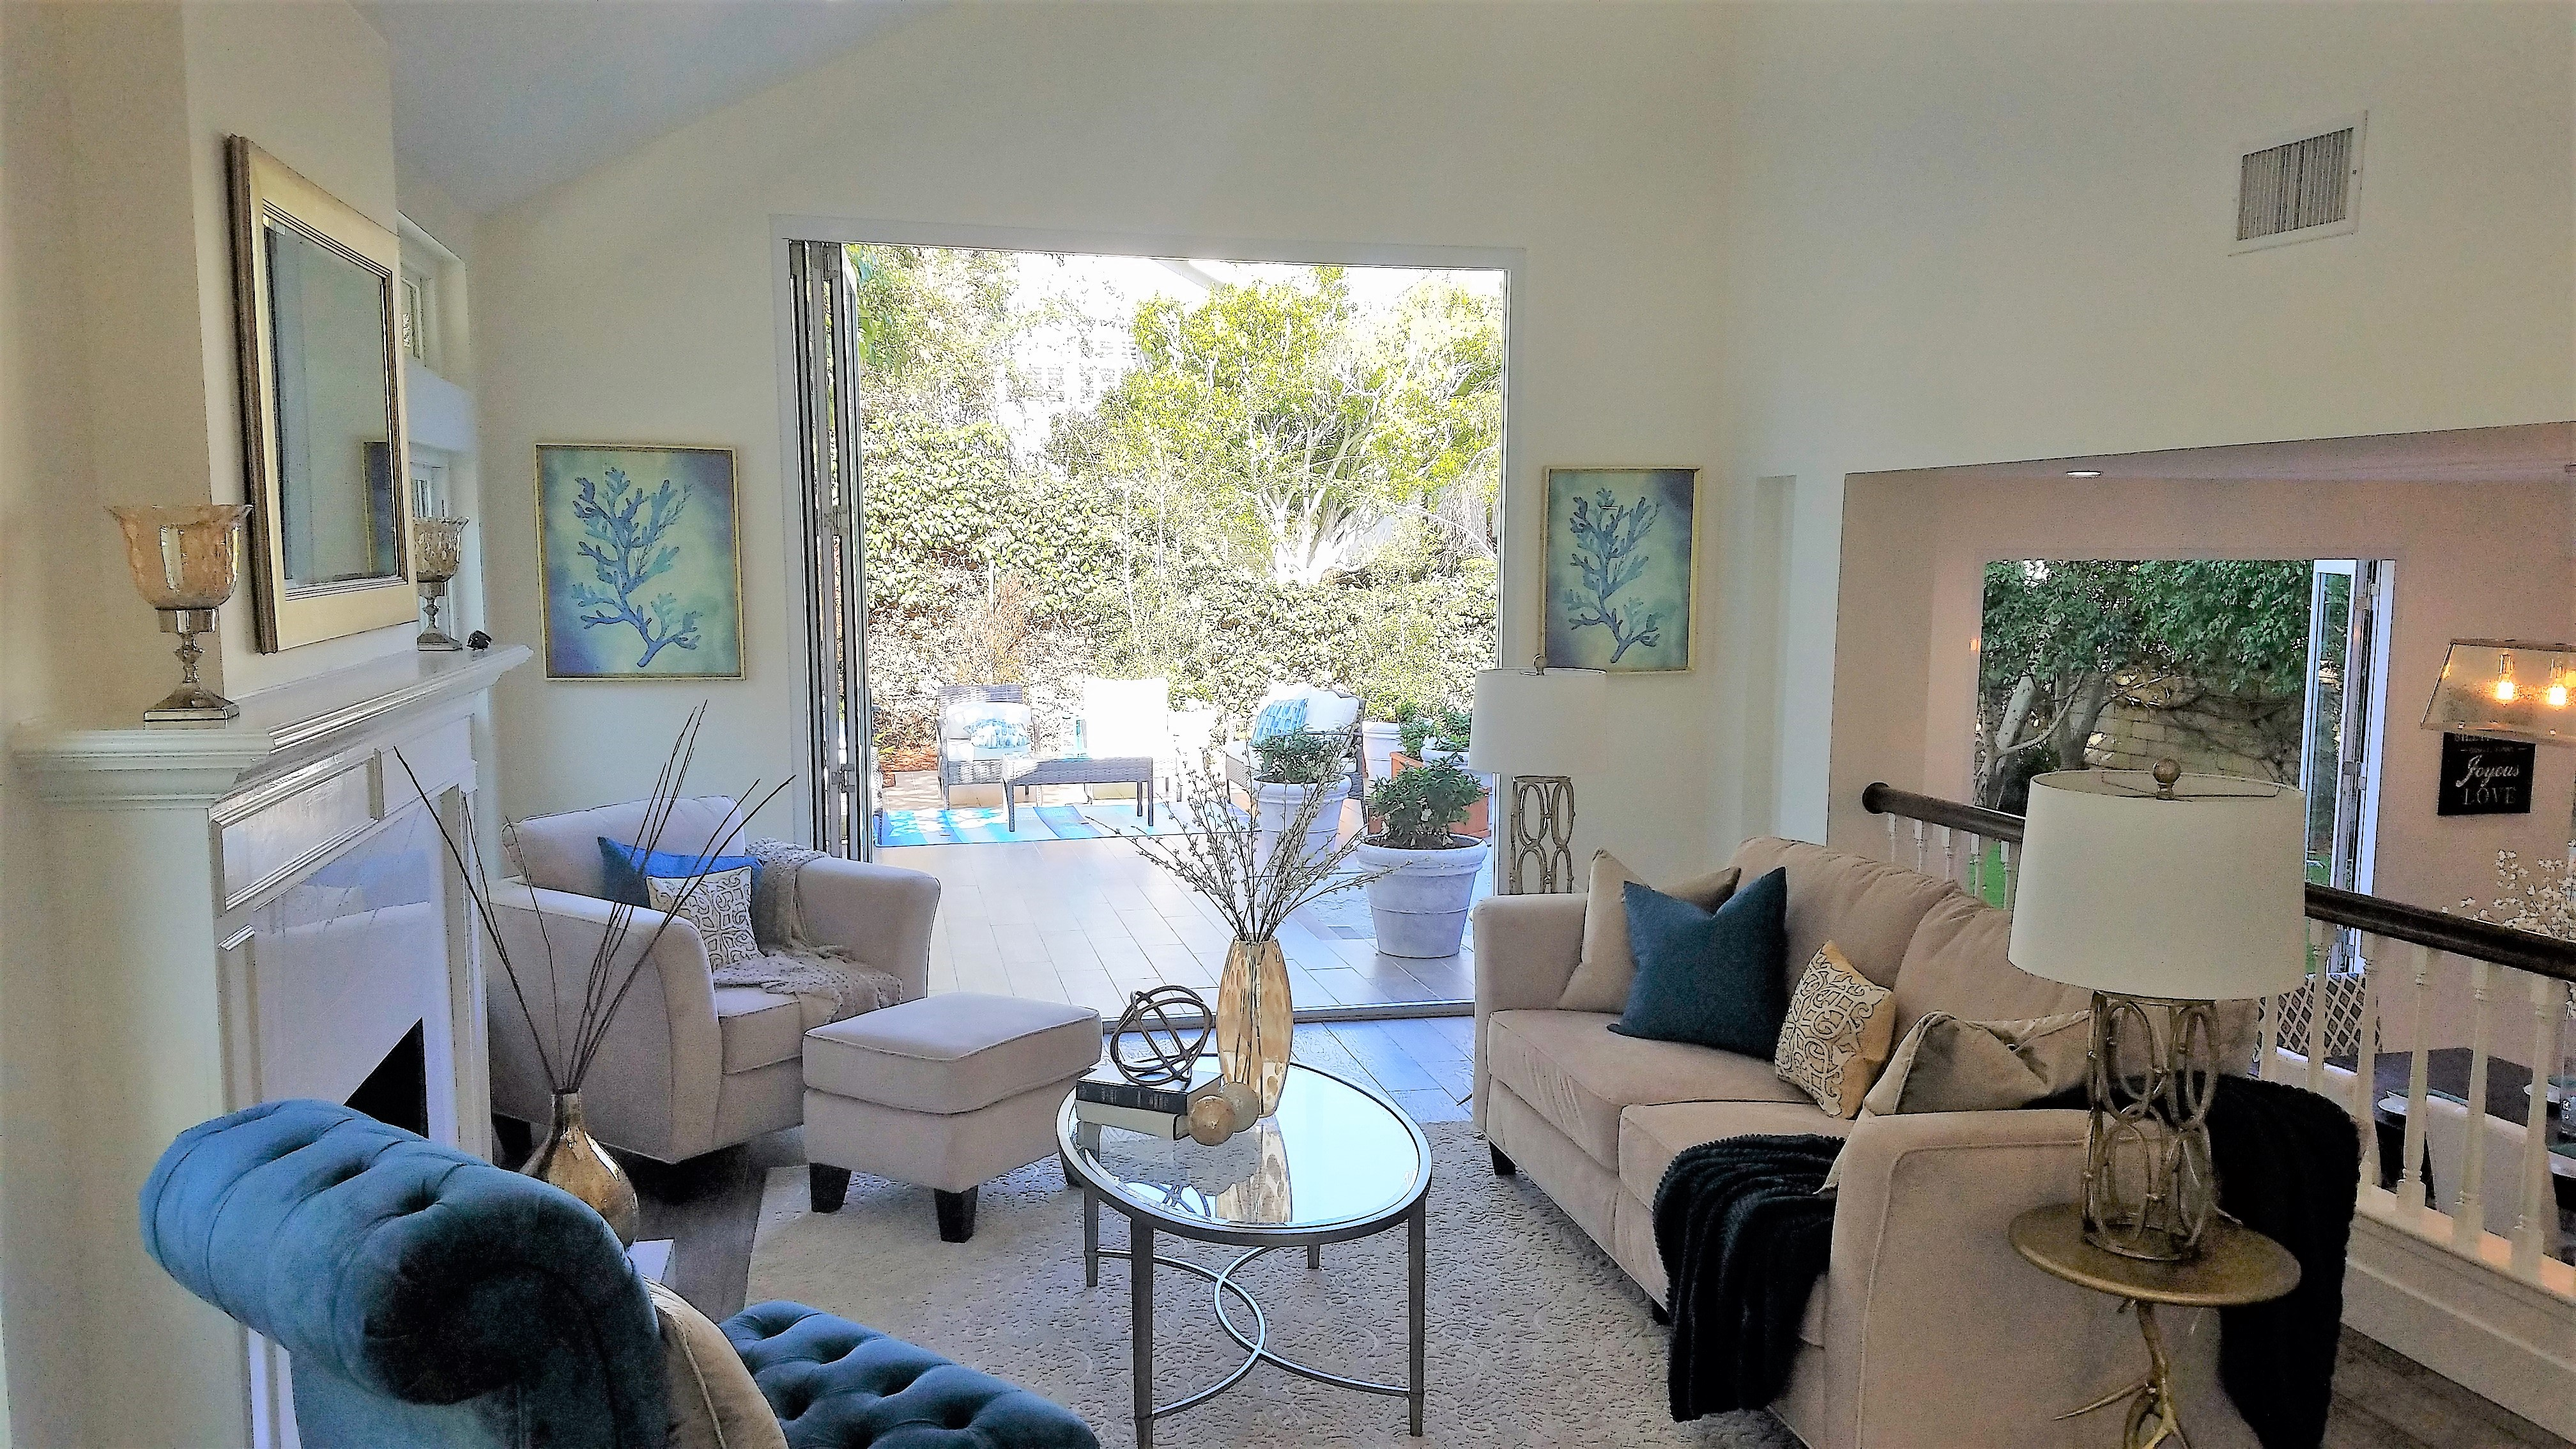 7505 W 85th St, Playa del Rey, CA, After Photo #2